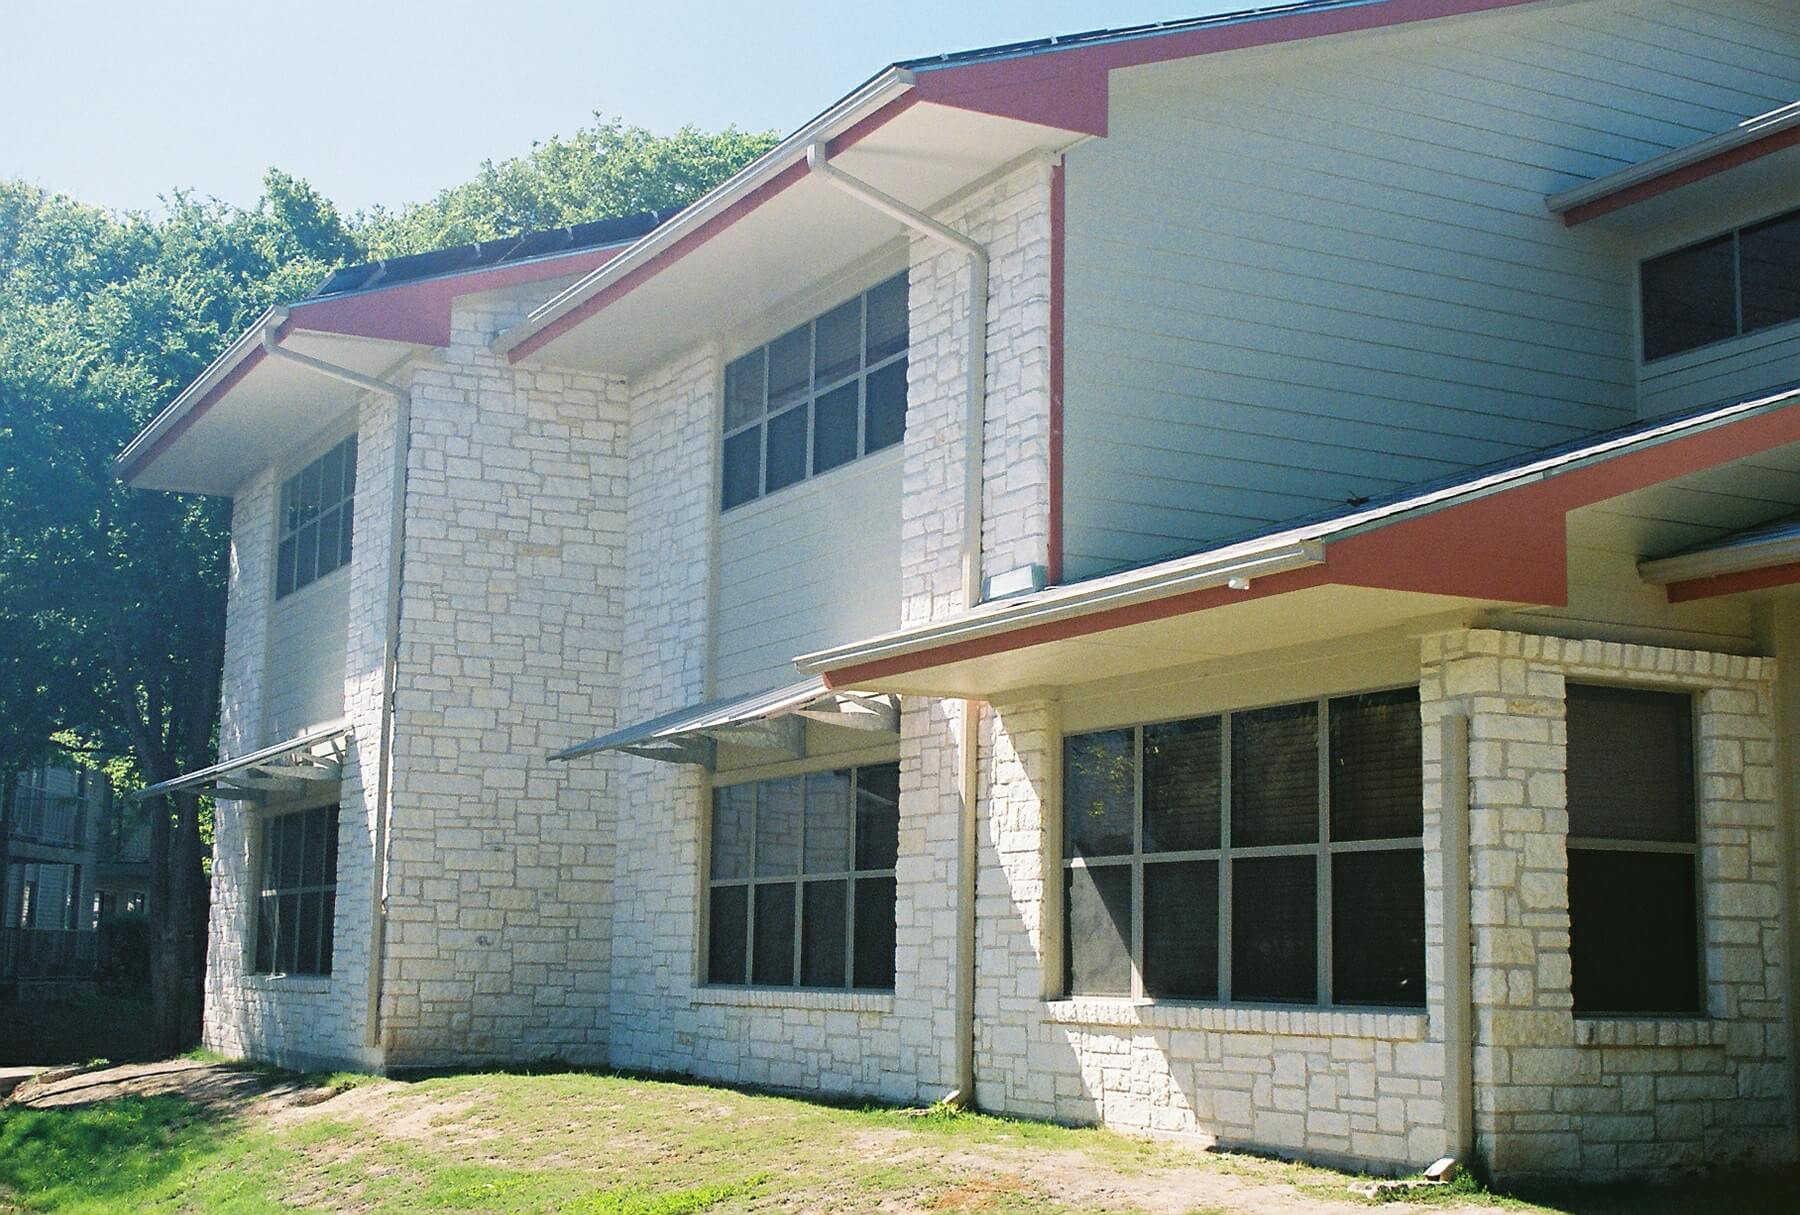 Affordable Senior Housing Construction in texas